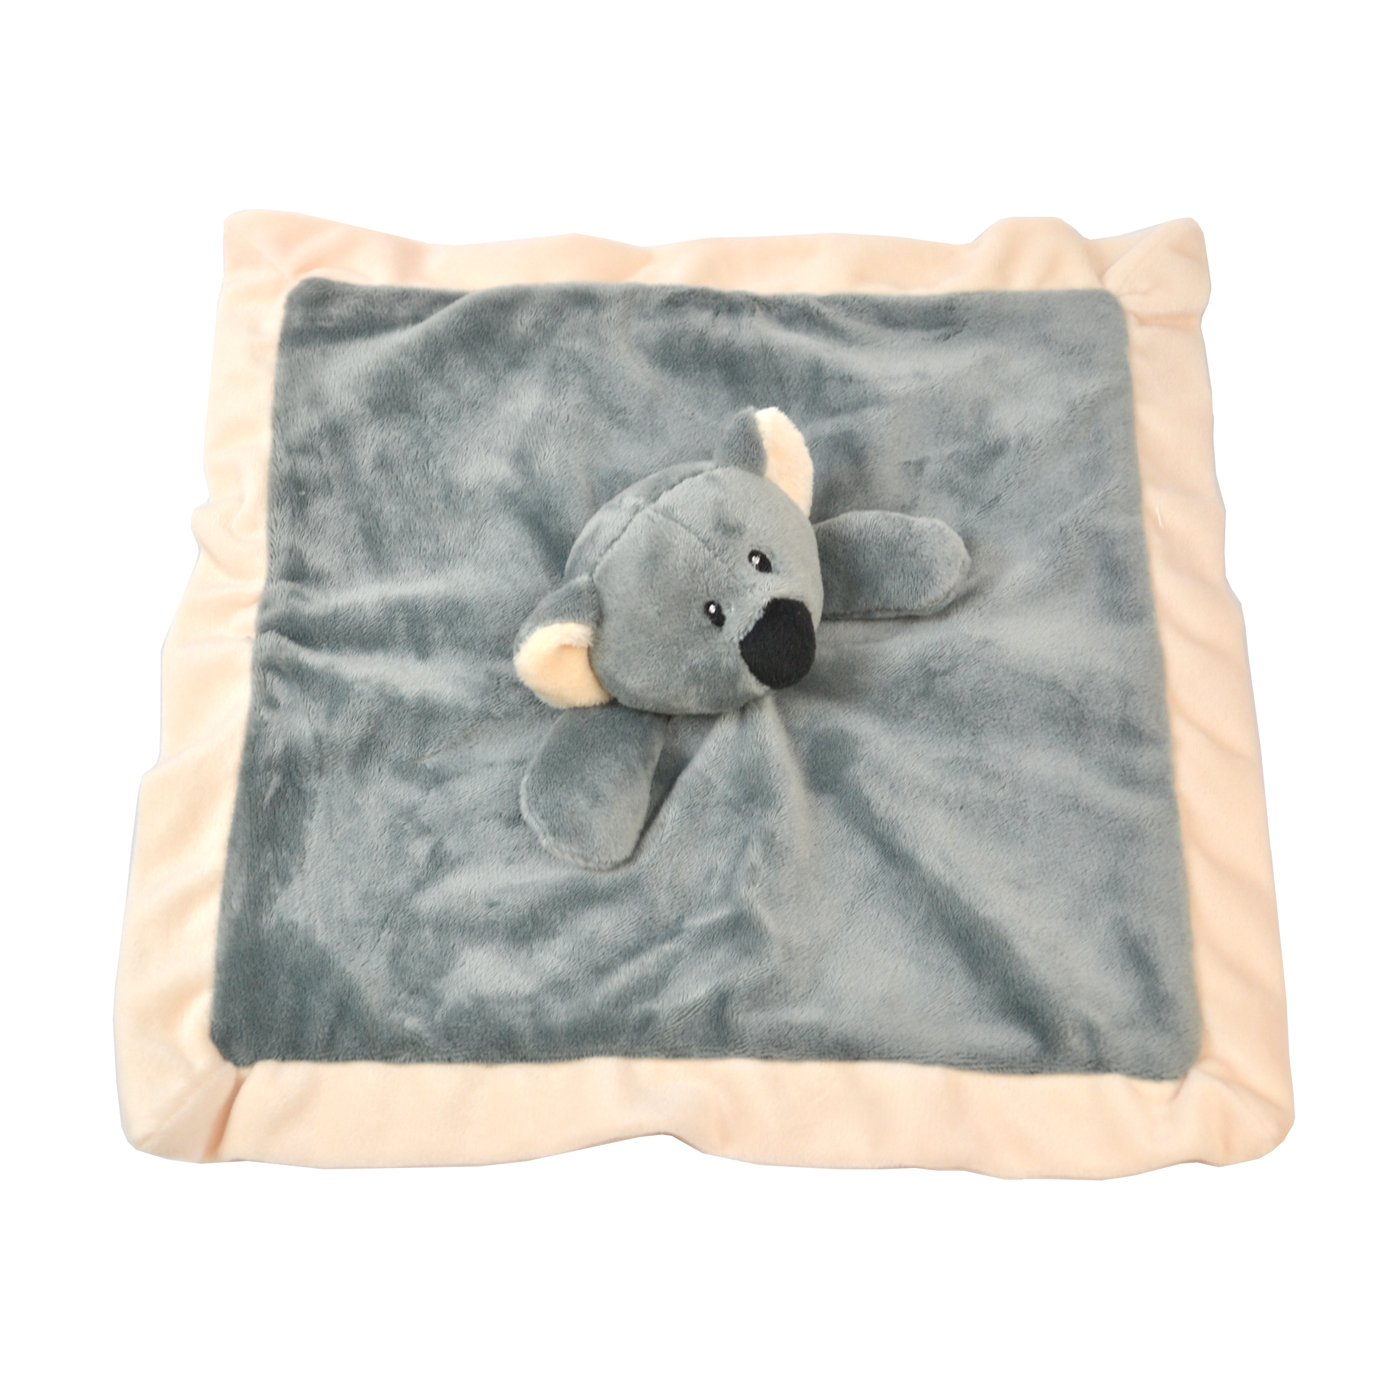 Lovey Security Blanket 12 inch Square Stuffed Animal Baby Blankie for Girls or Boys (Koala) by Baberoo